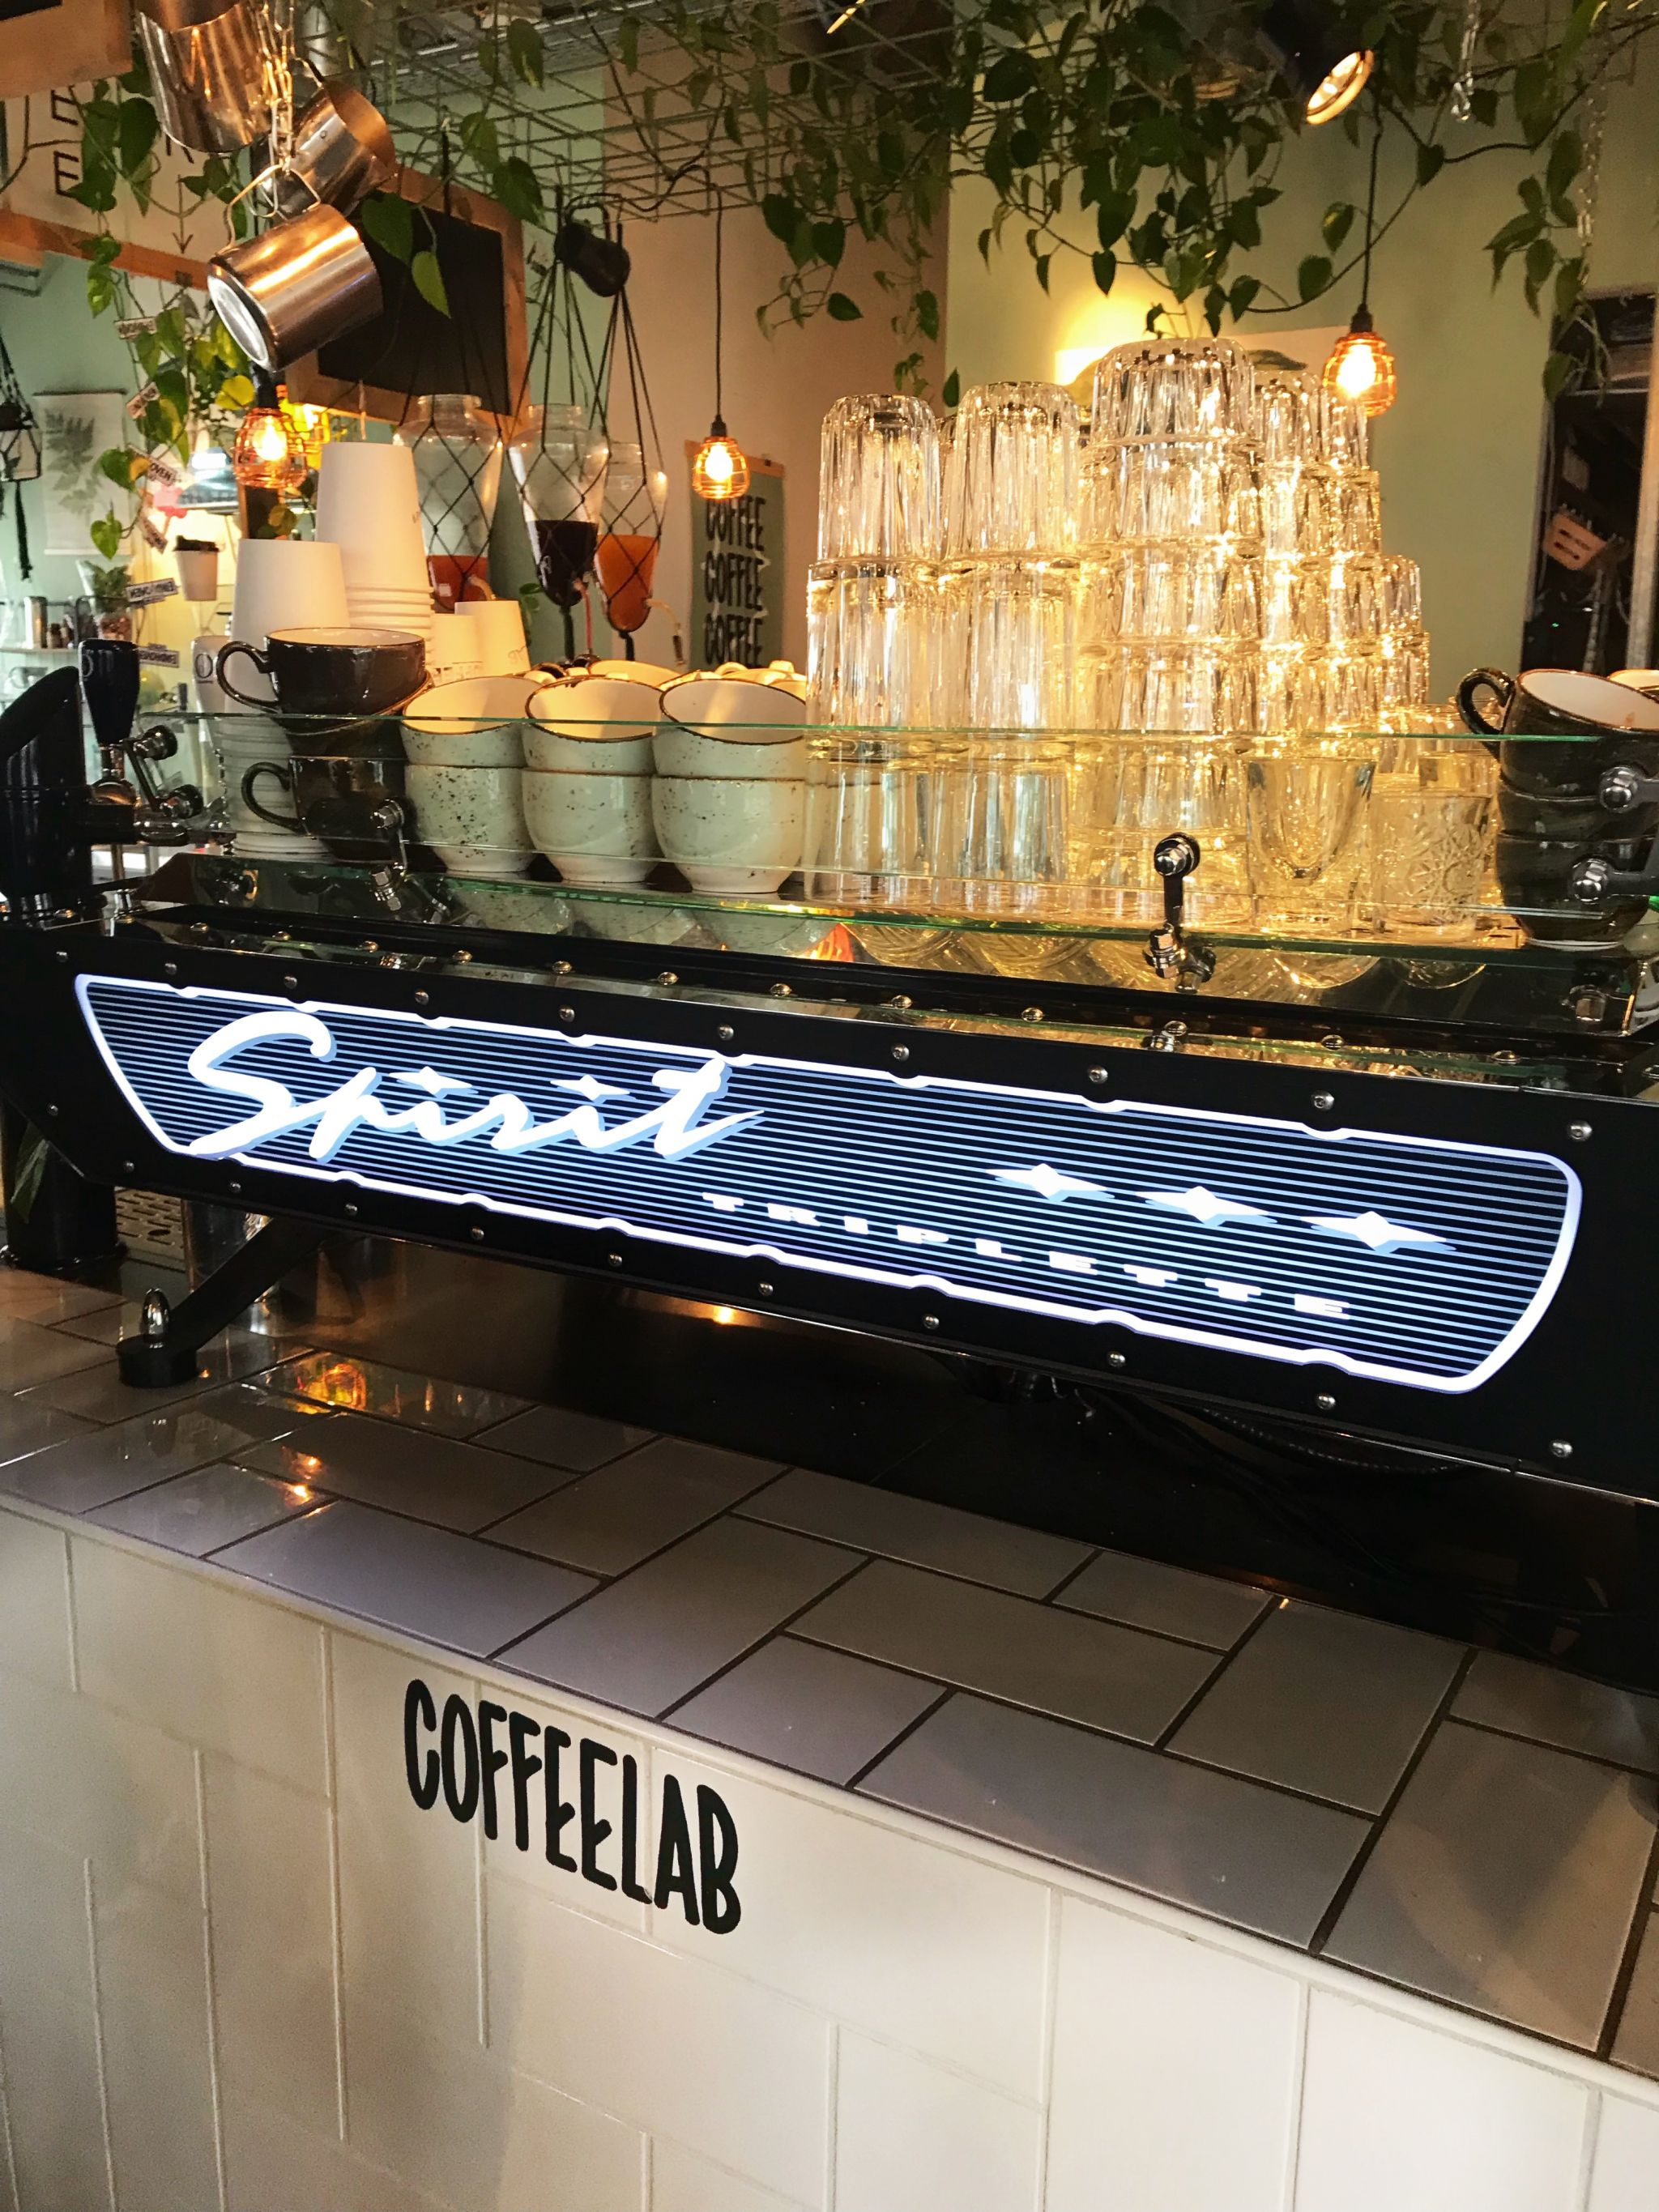 Coffeelab coffee shop Eindhoven